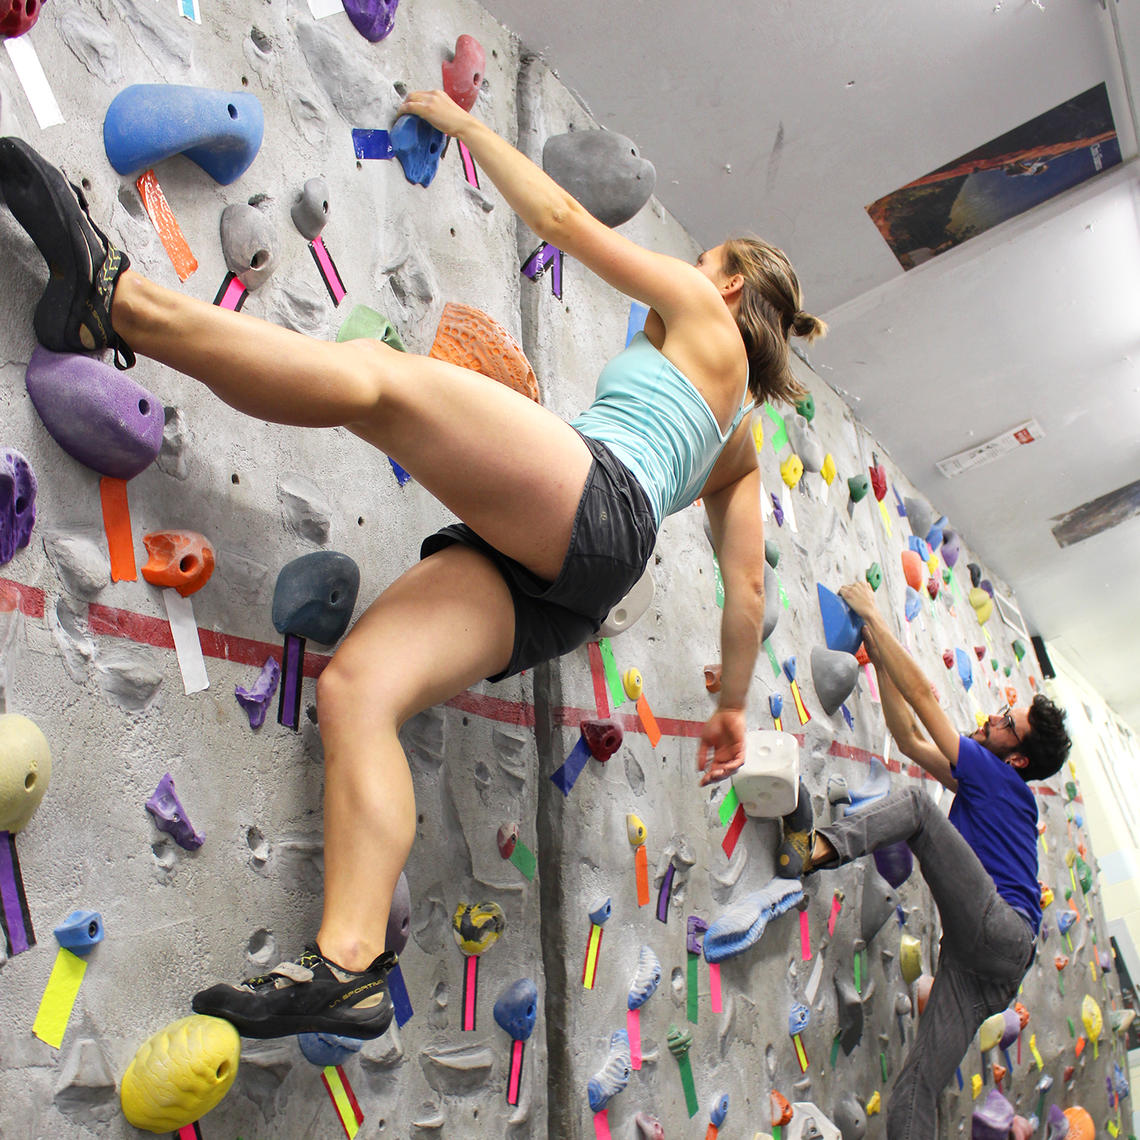 Woman and man climbing bouldering wall